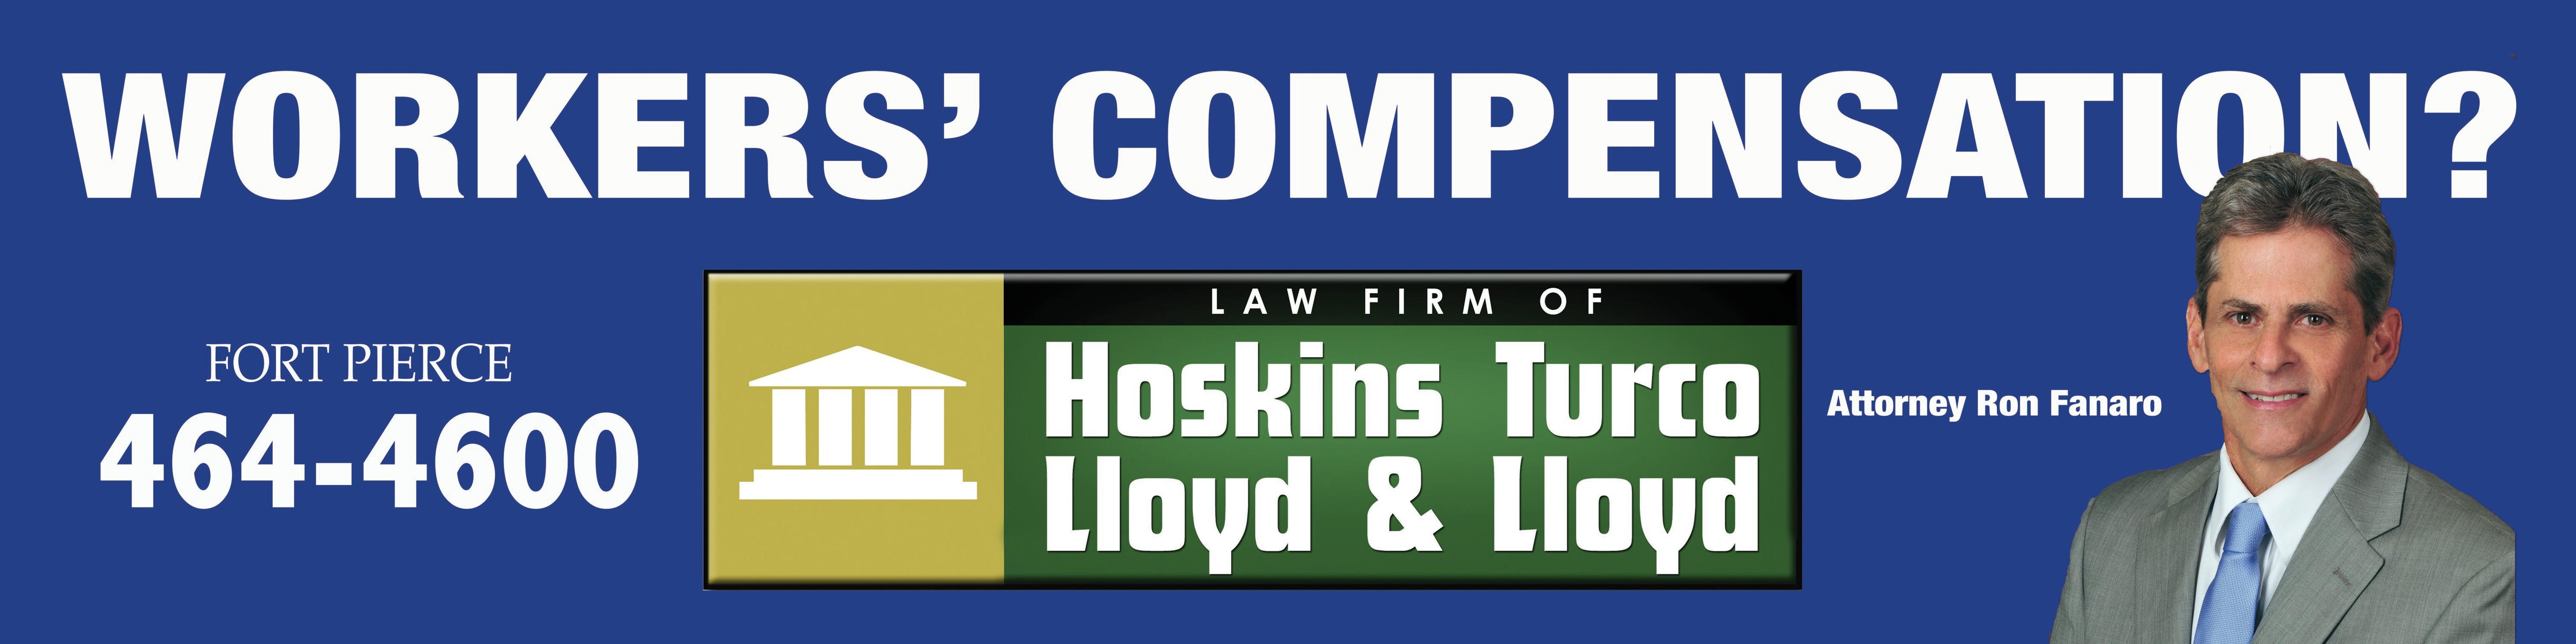 Aten Advertising recently developed this new billboard layout for the Workers' Compensation department at Hoskins Turco Lloyd & Lloyd.